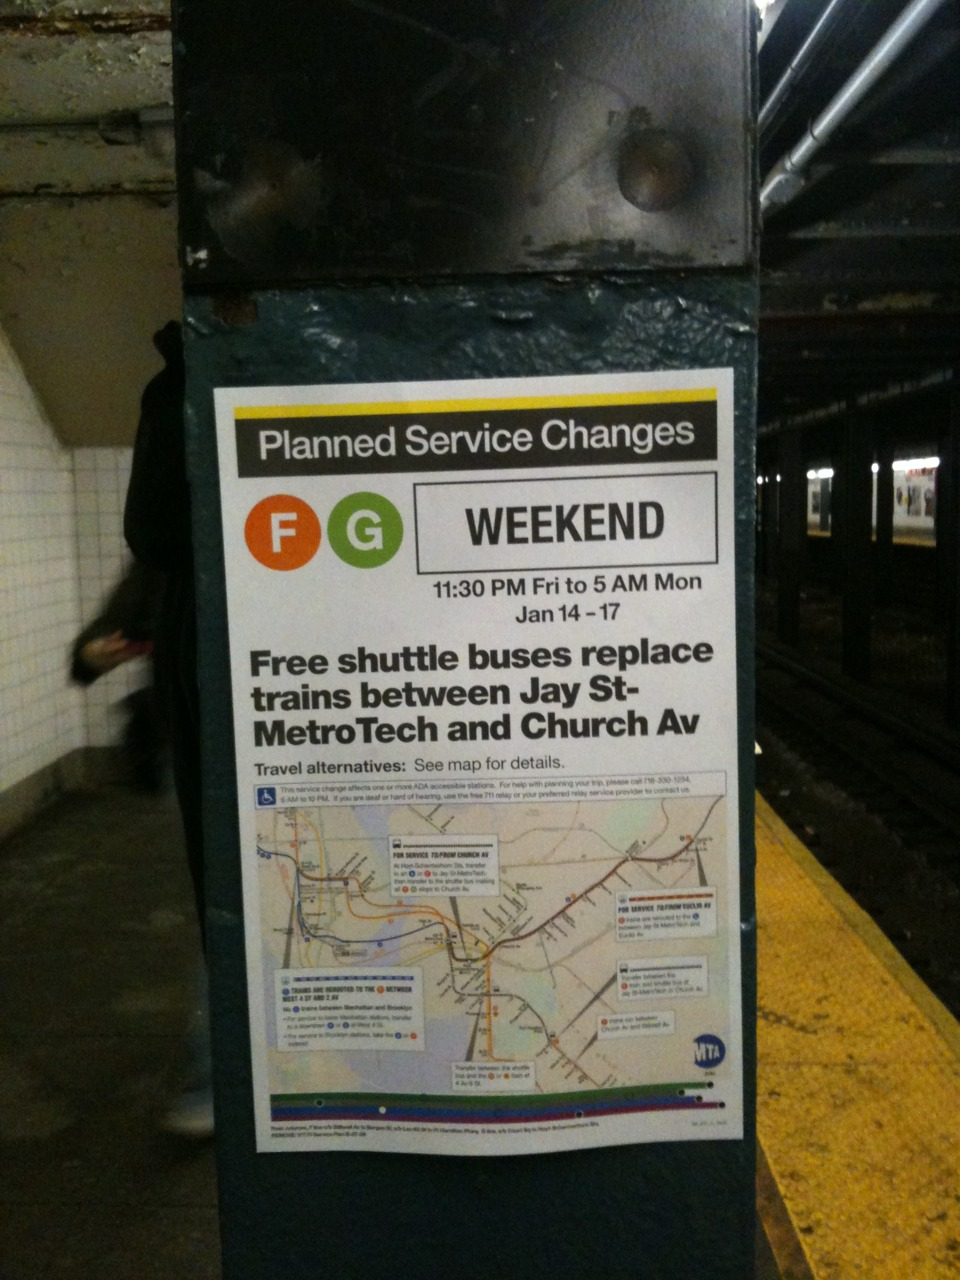 Who is the lead designer at MTA now? A serious come-up with their information design.